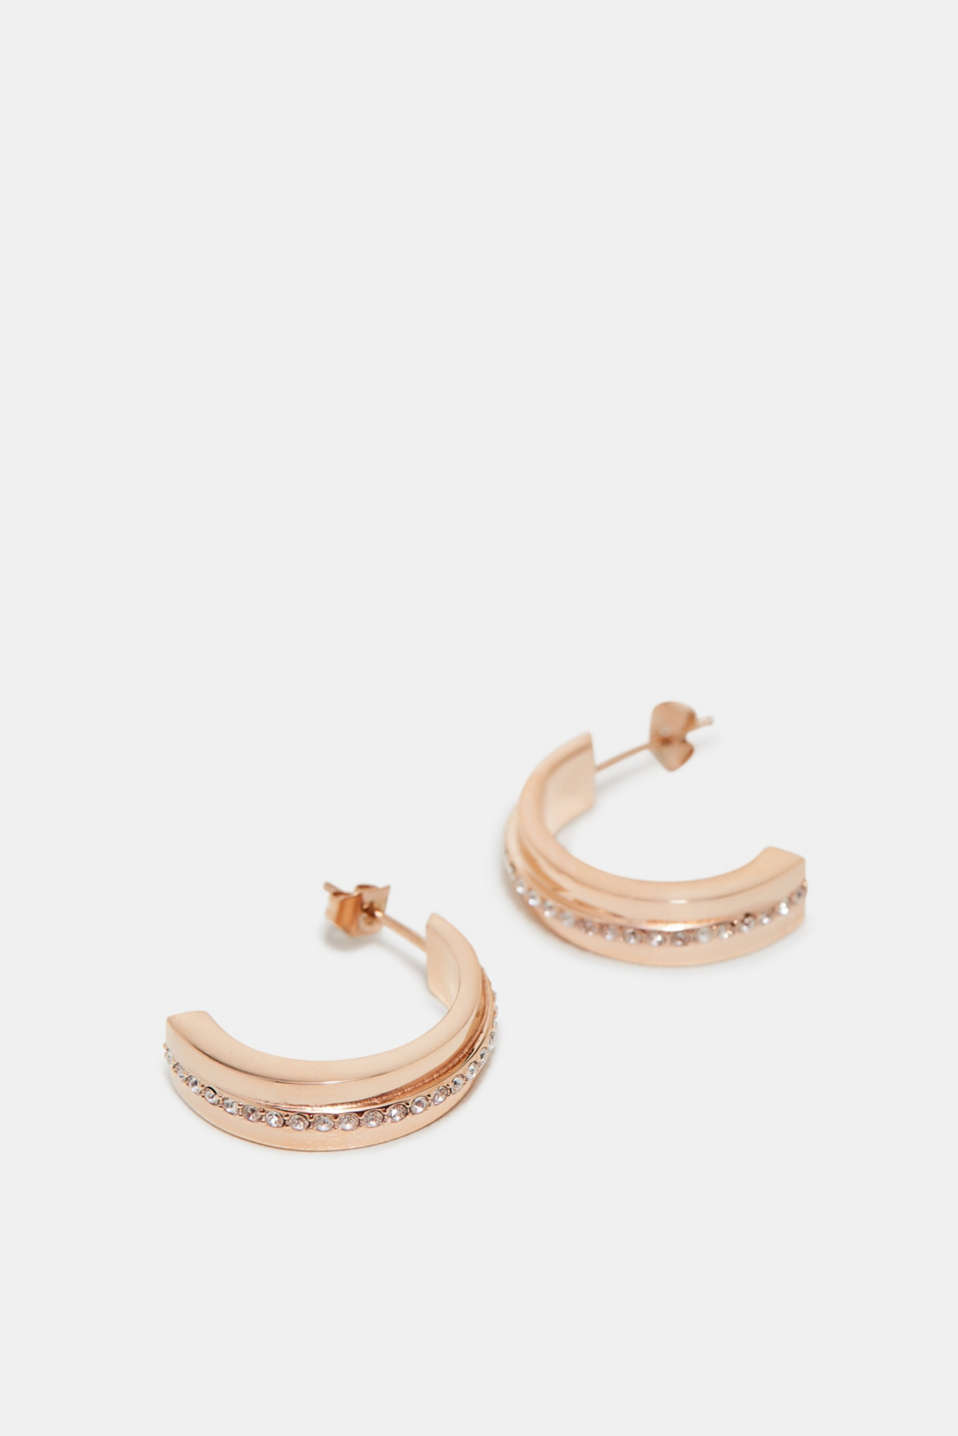 Esprit - Earrings in rose gold with zirconia